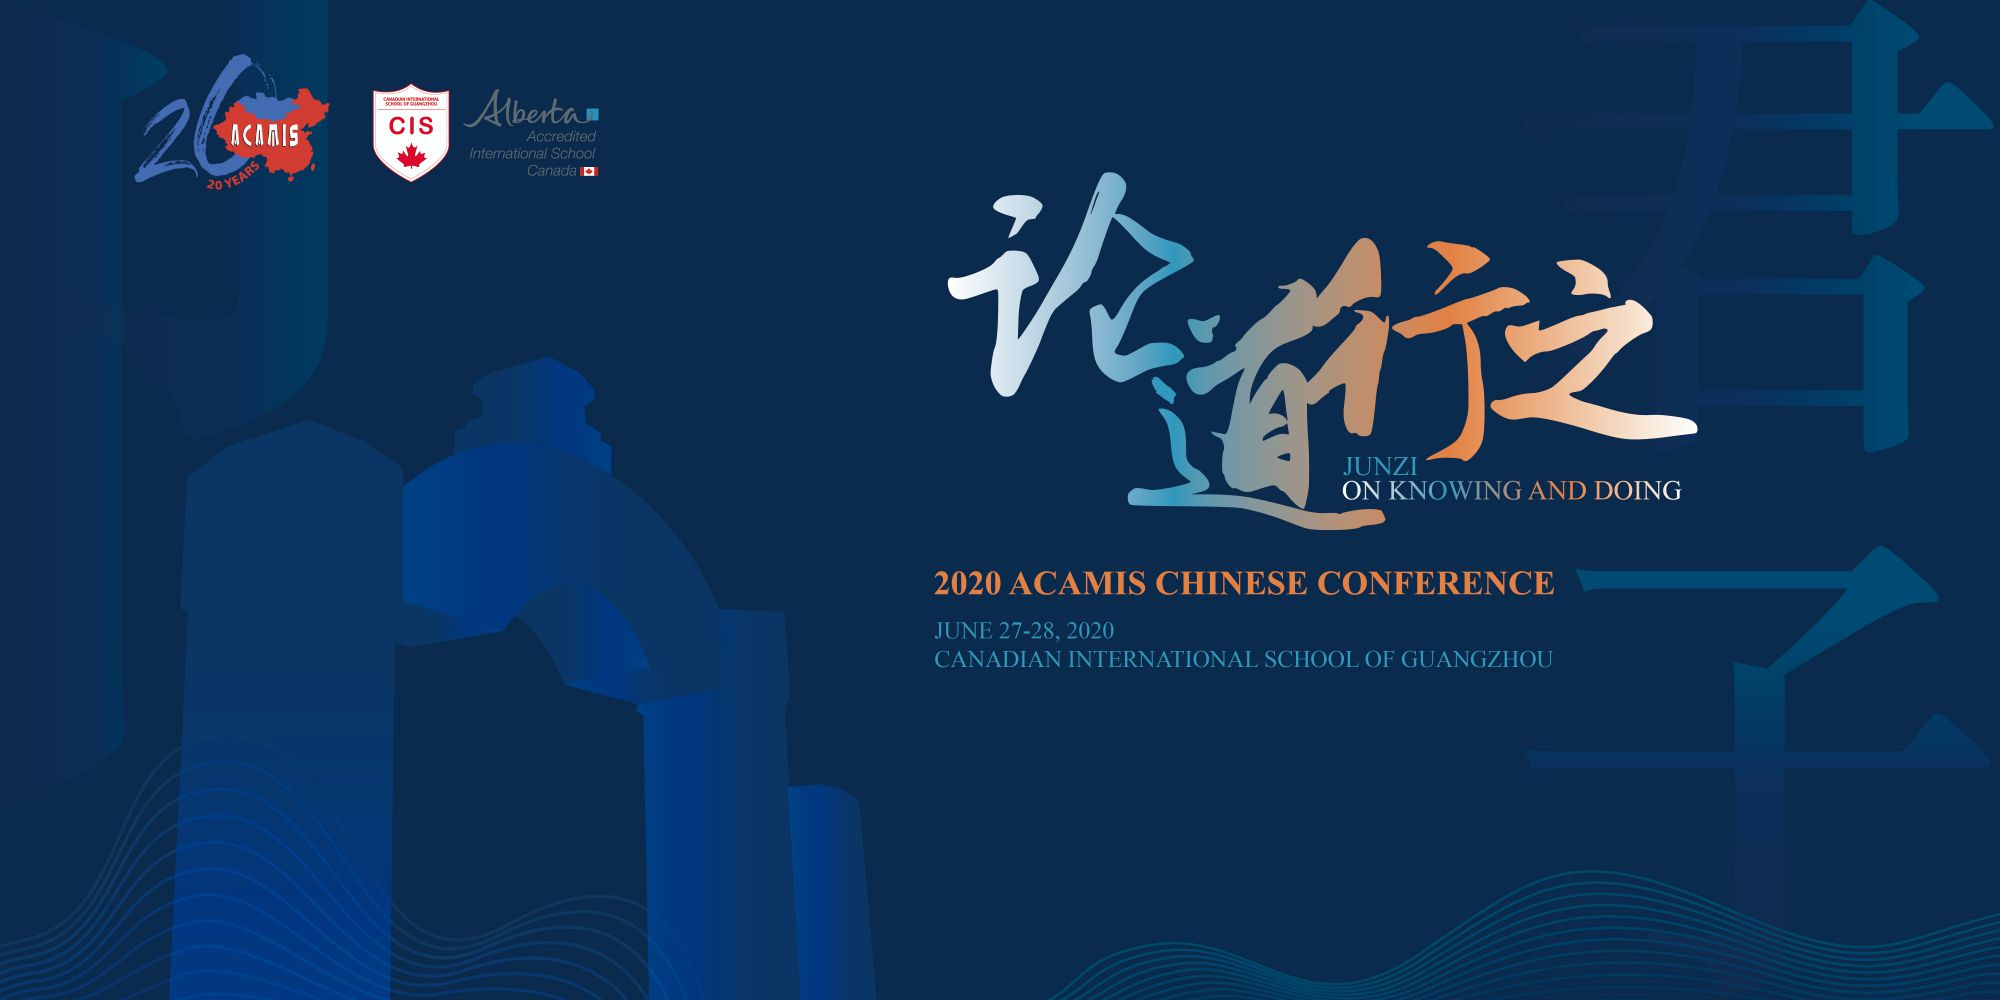 2020 Chinese Conference Cancelled; 2021 Conference Announced